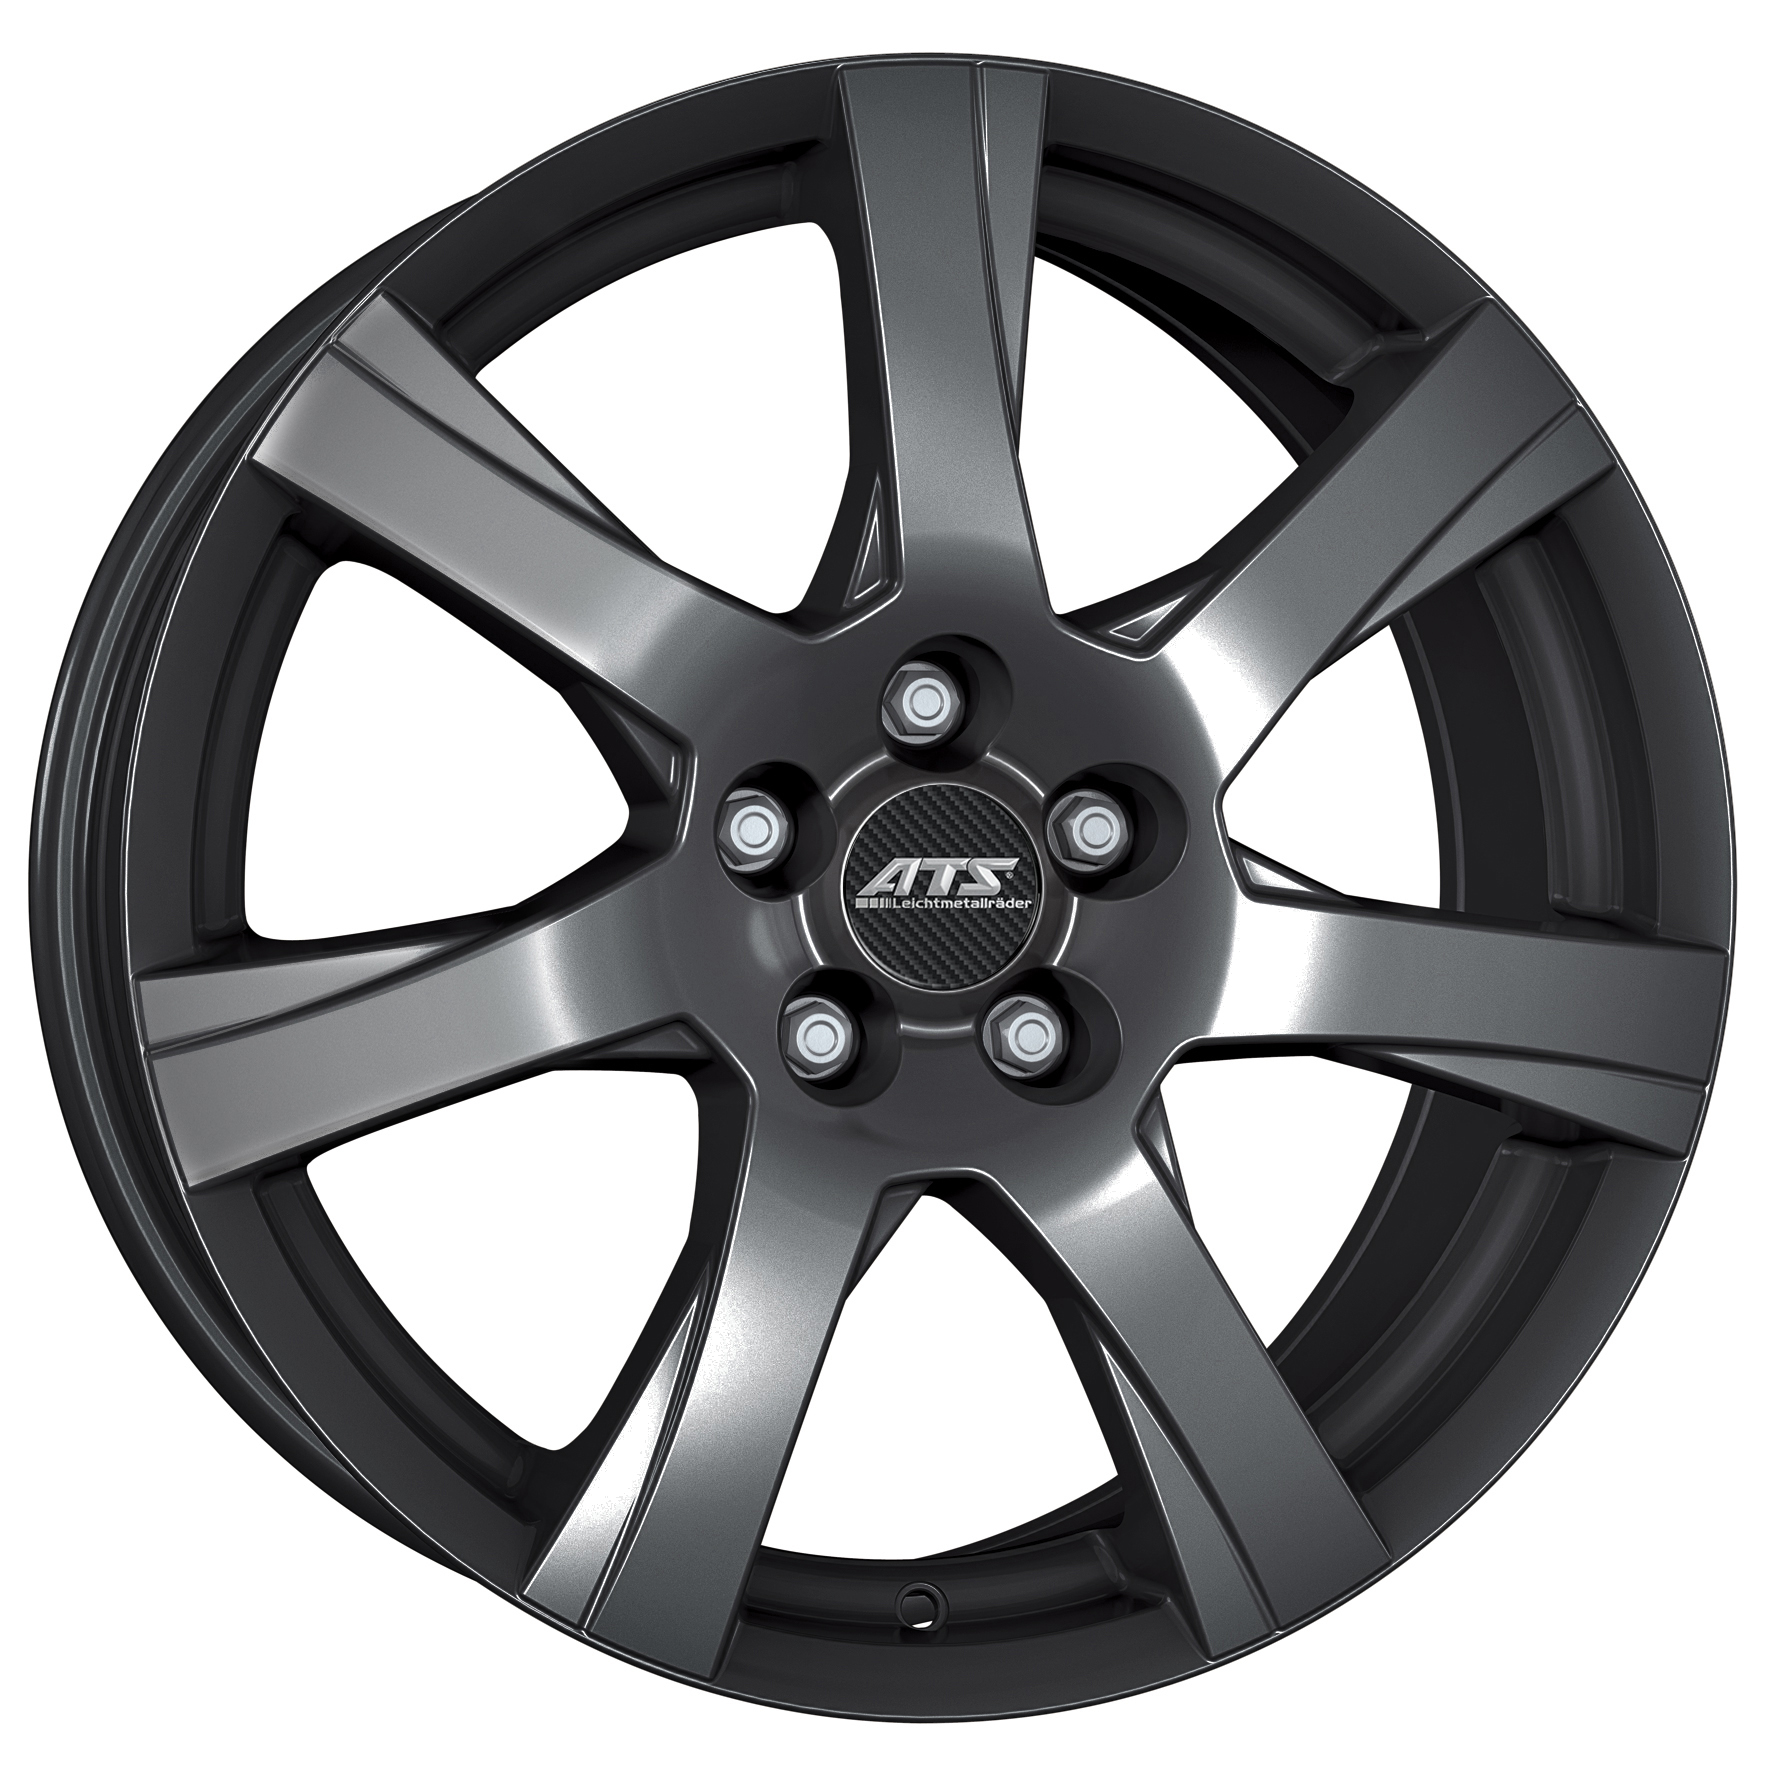 ats wheels quality discount alloys from tyresave. Black Bedroom Furniture Sets. Home Design Ideas